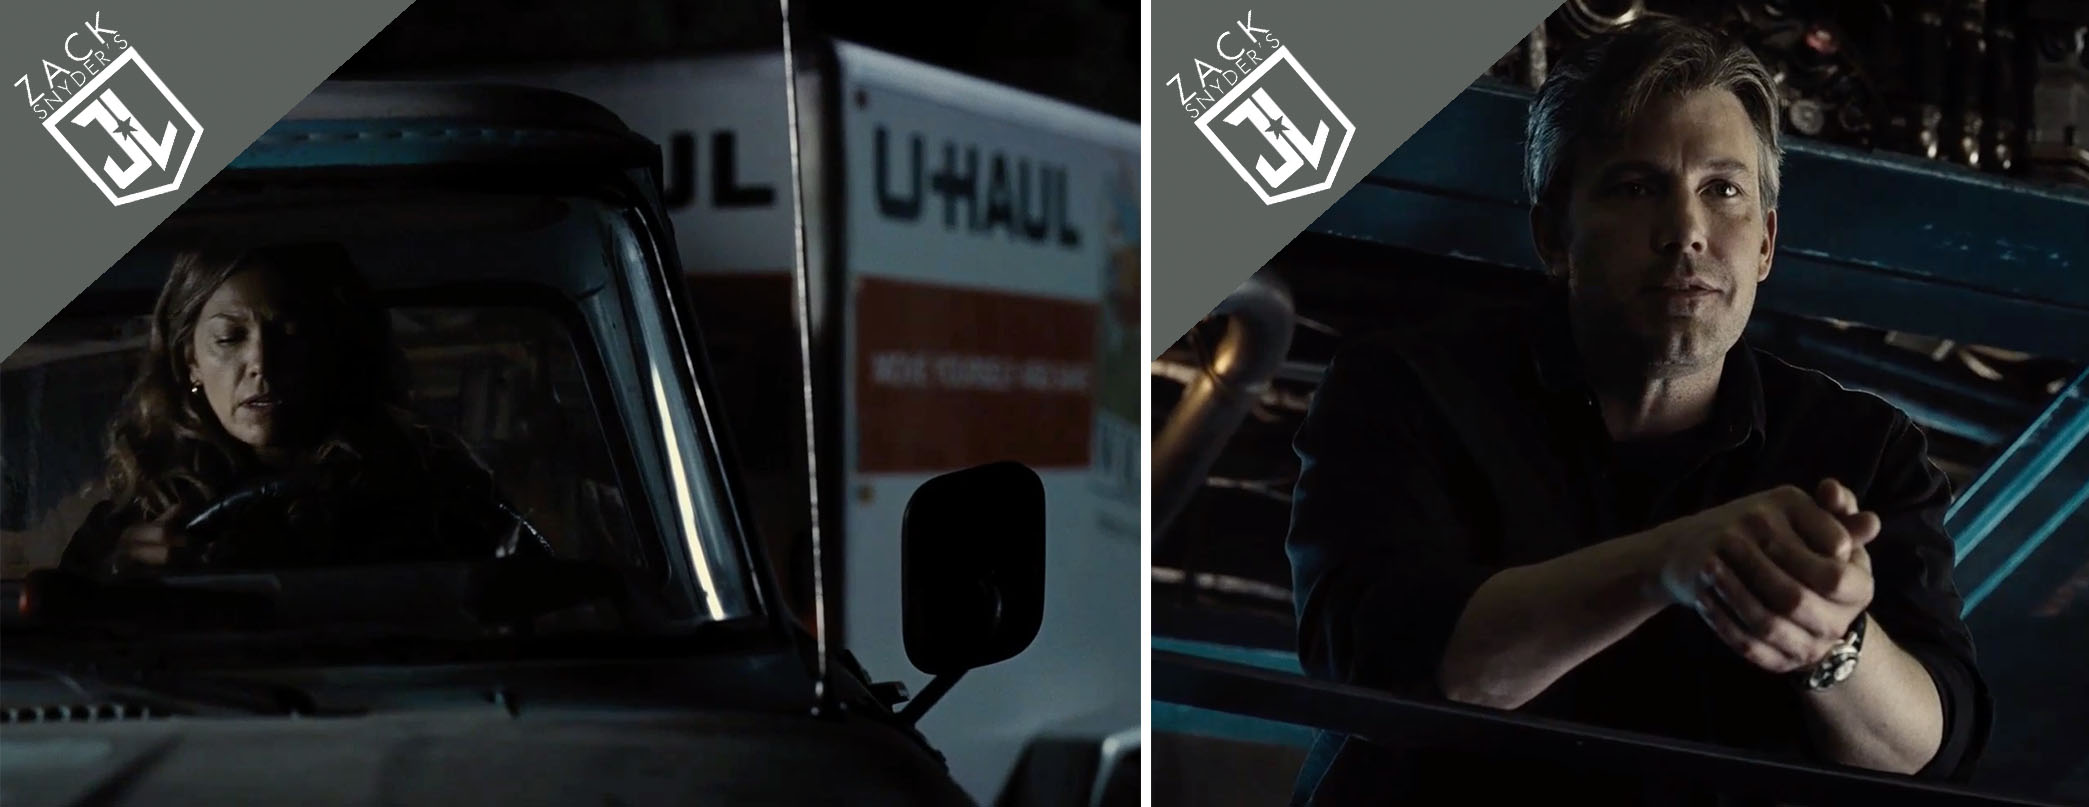 U-Haul and Breguet product placements in Zack Snyder's Justice League